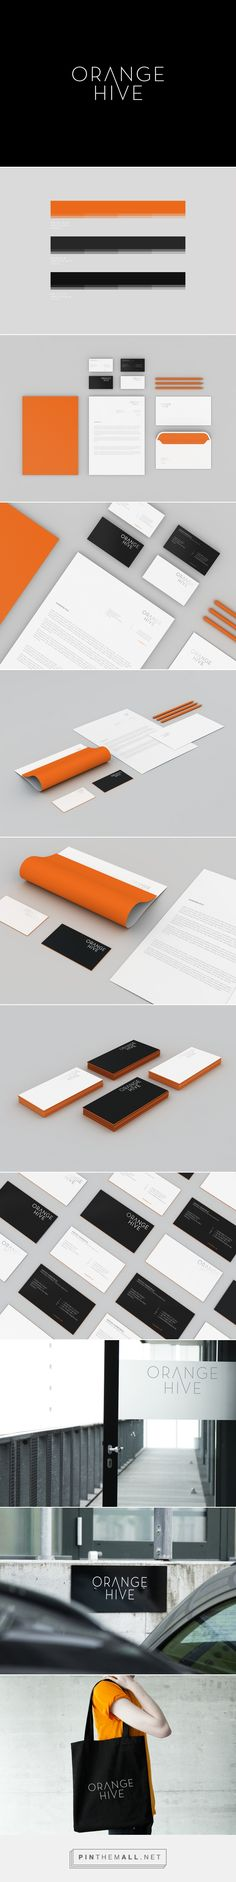 Orange Hive on Behance | Fivestar Branding – Design and Branding Agency & Inspiration Gallery